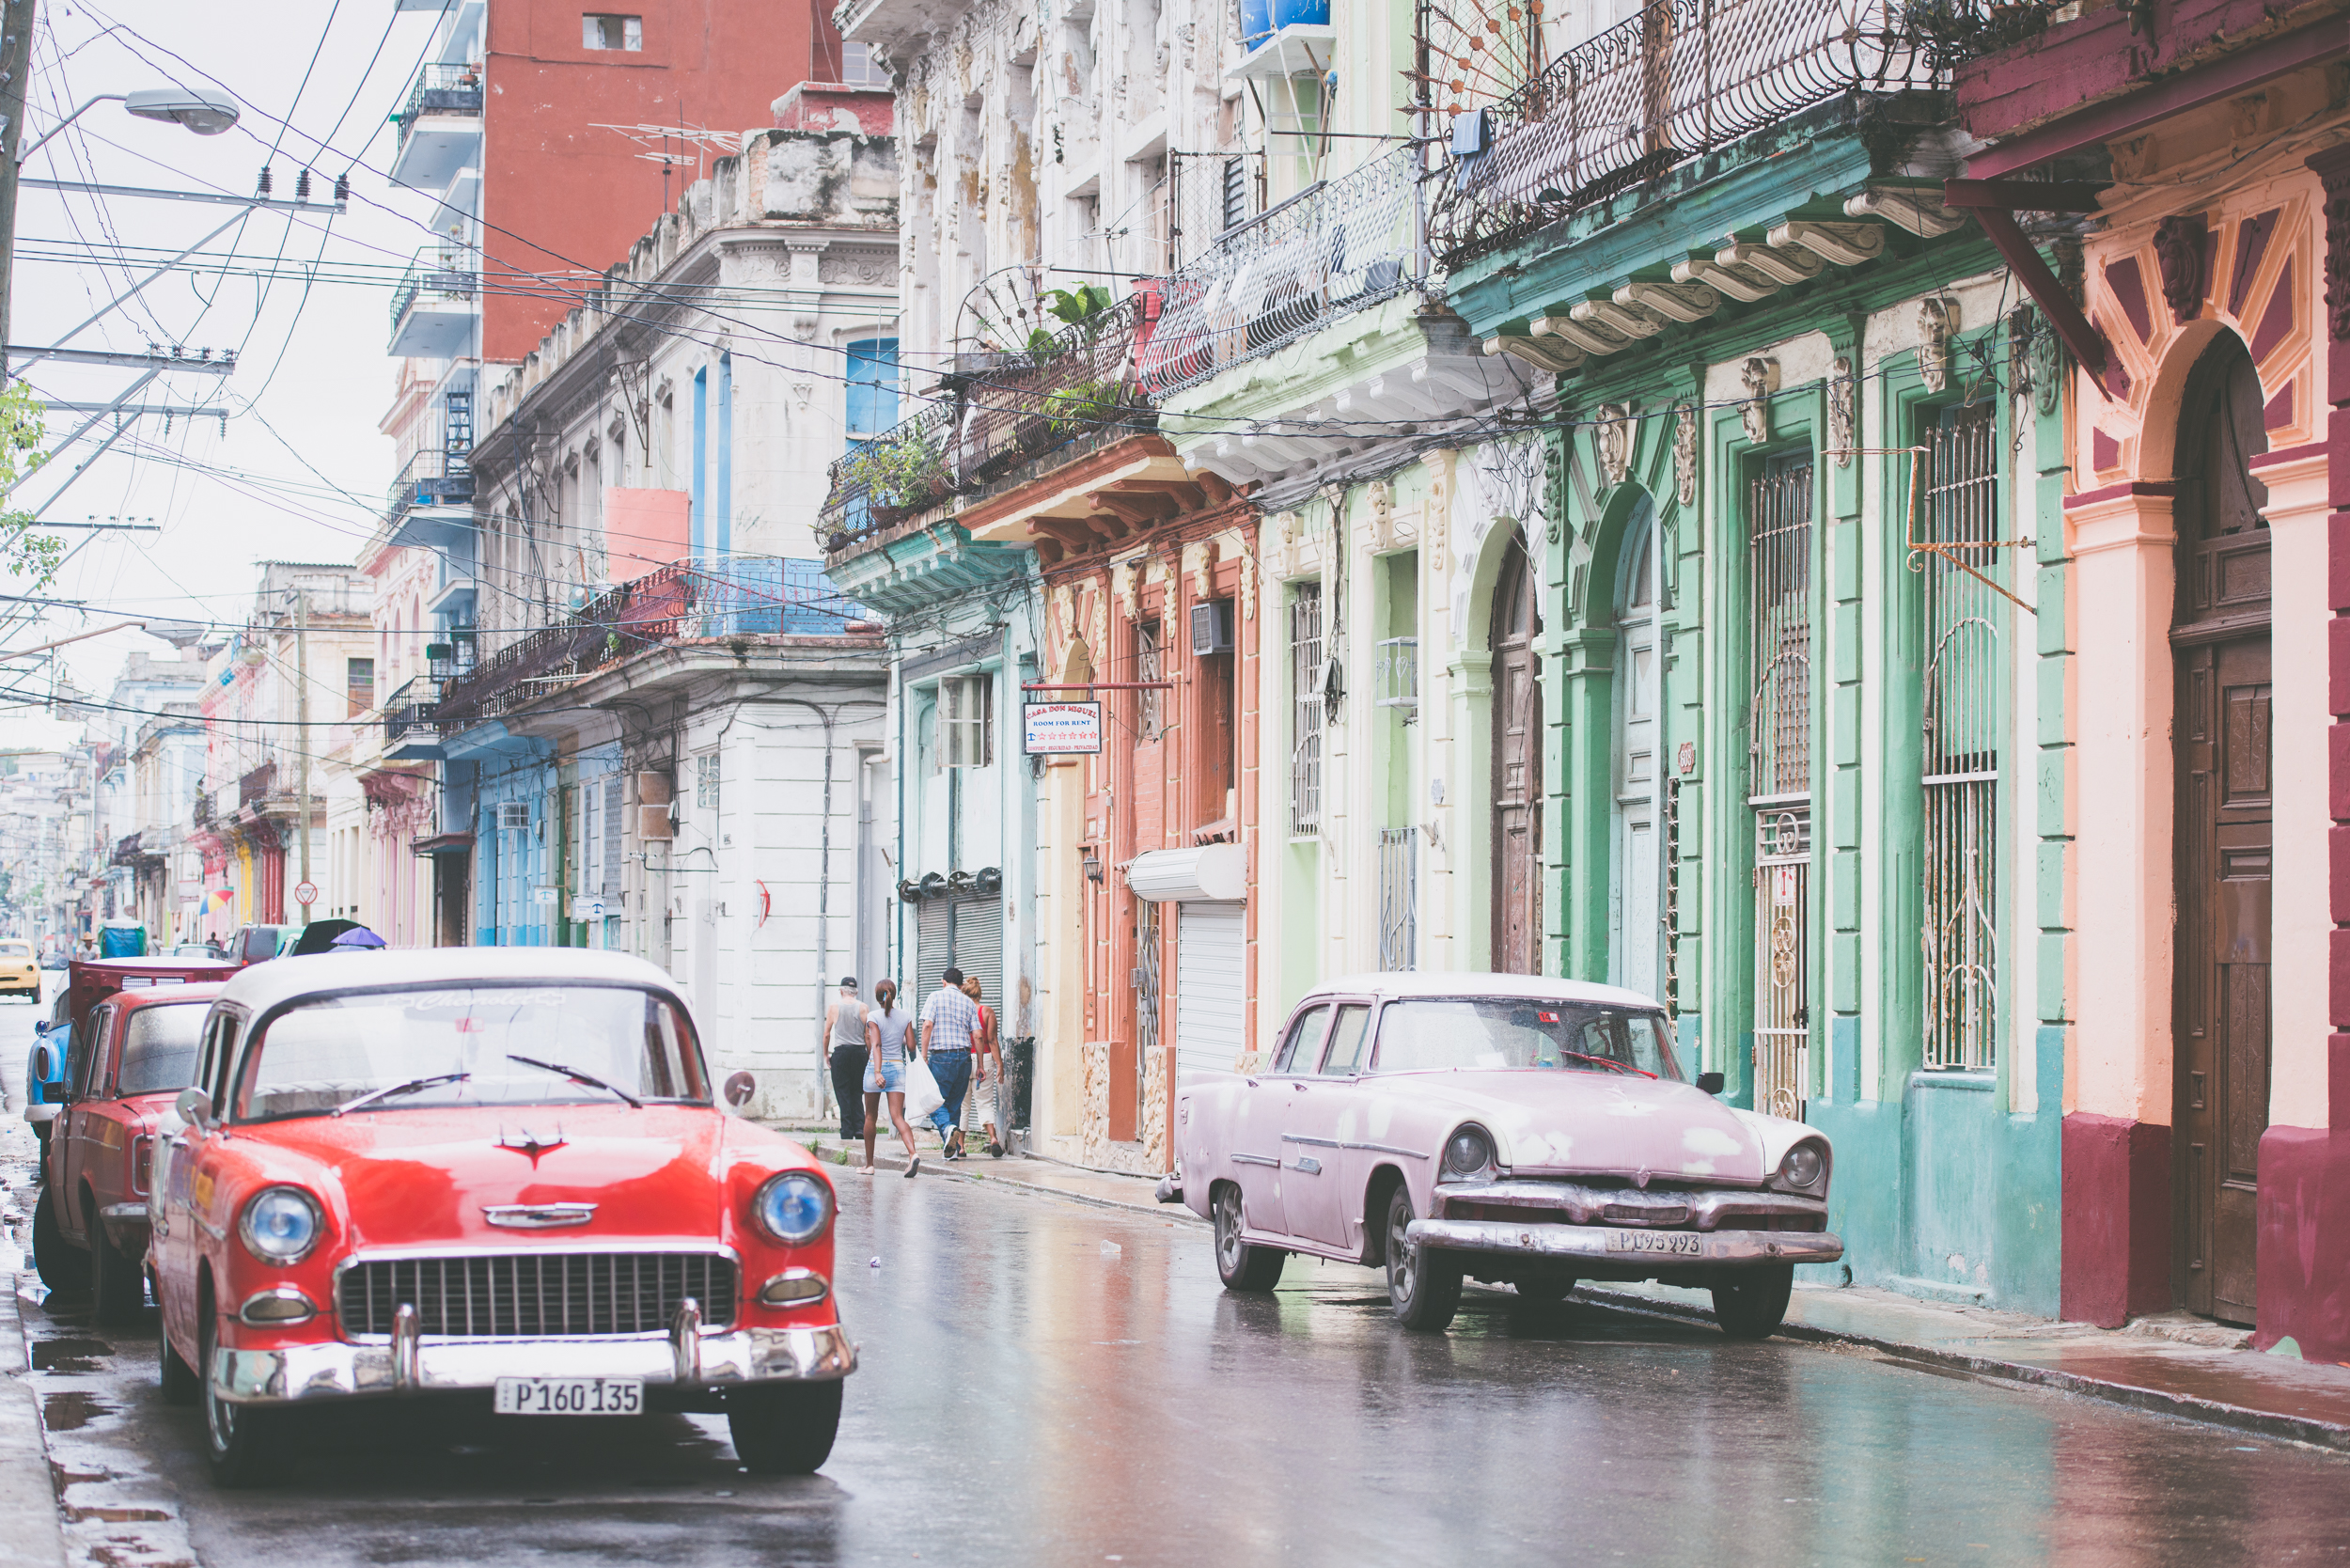 Street in Cuba - Travel - photo credit Nicola Bailey.jpg